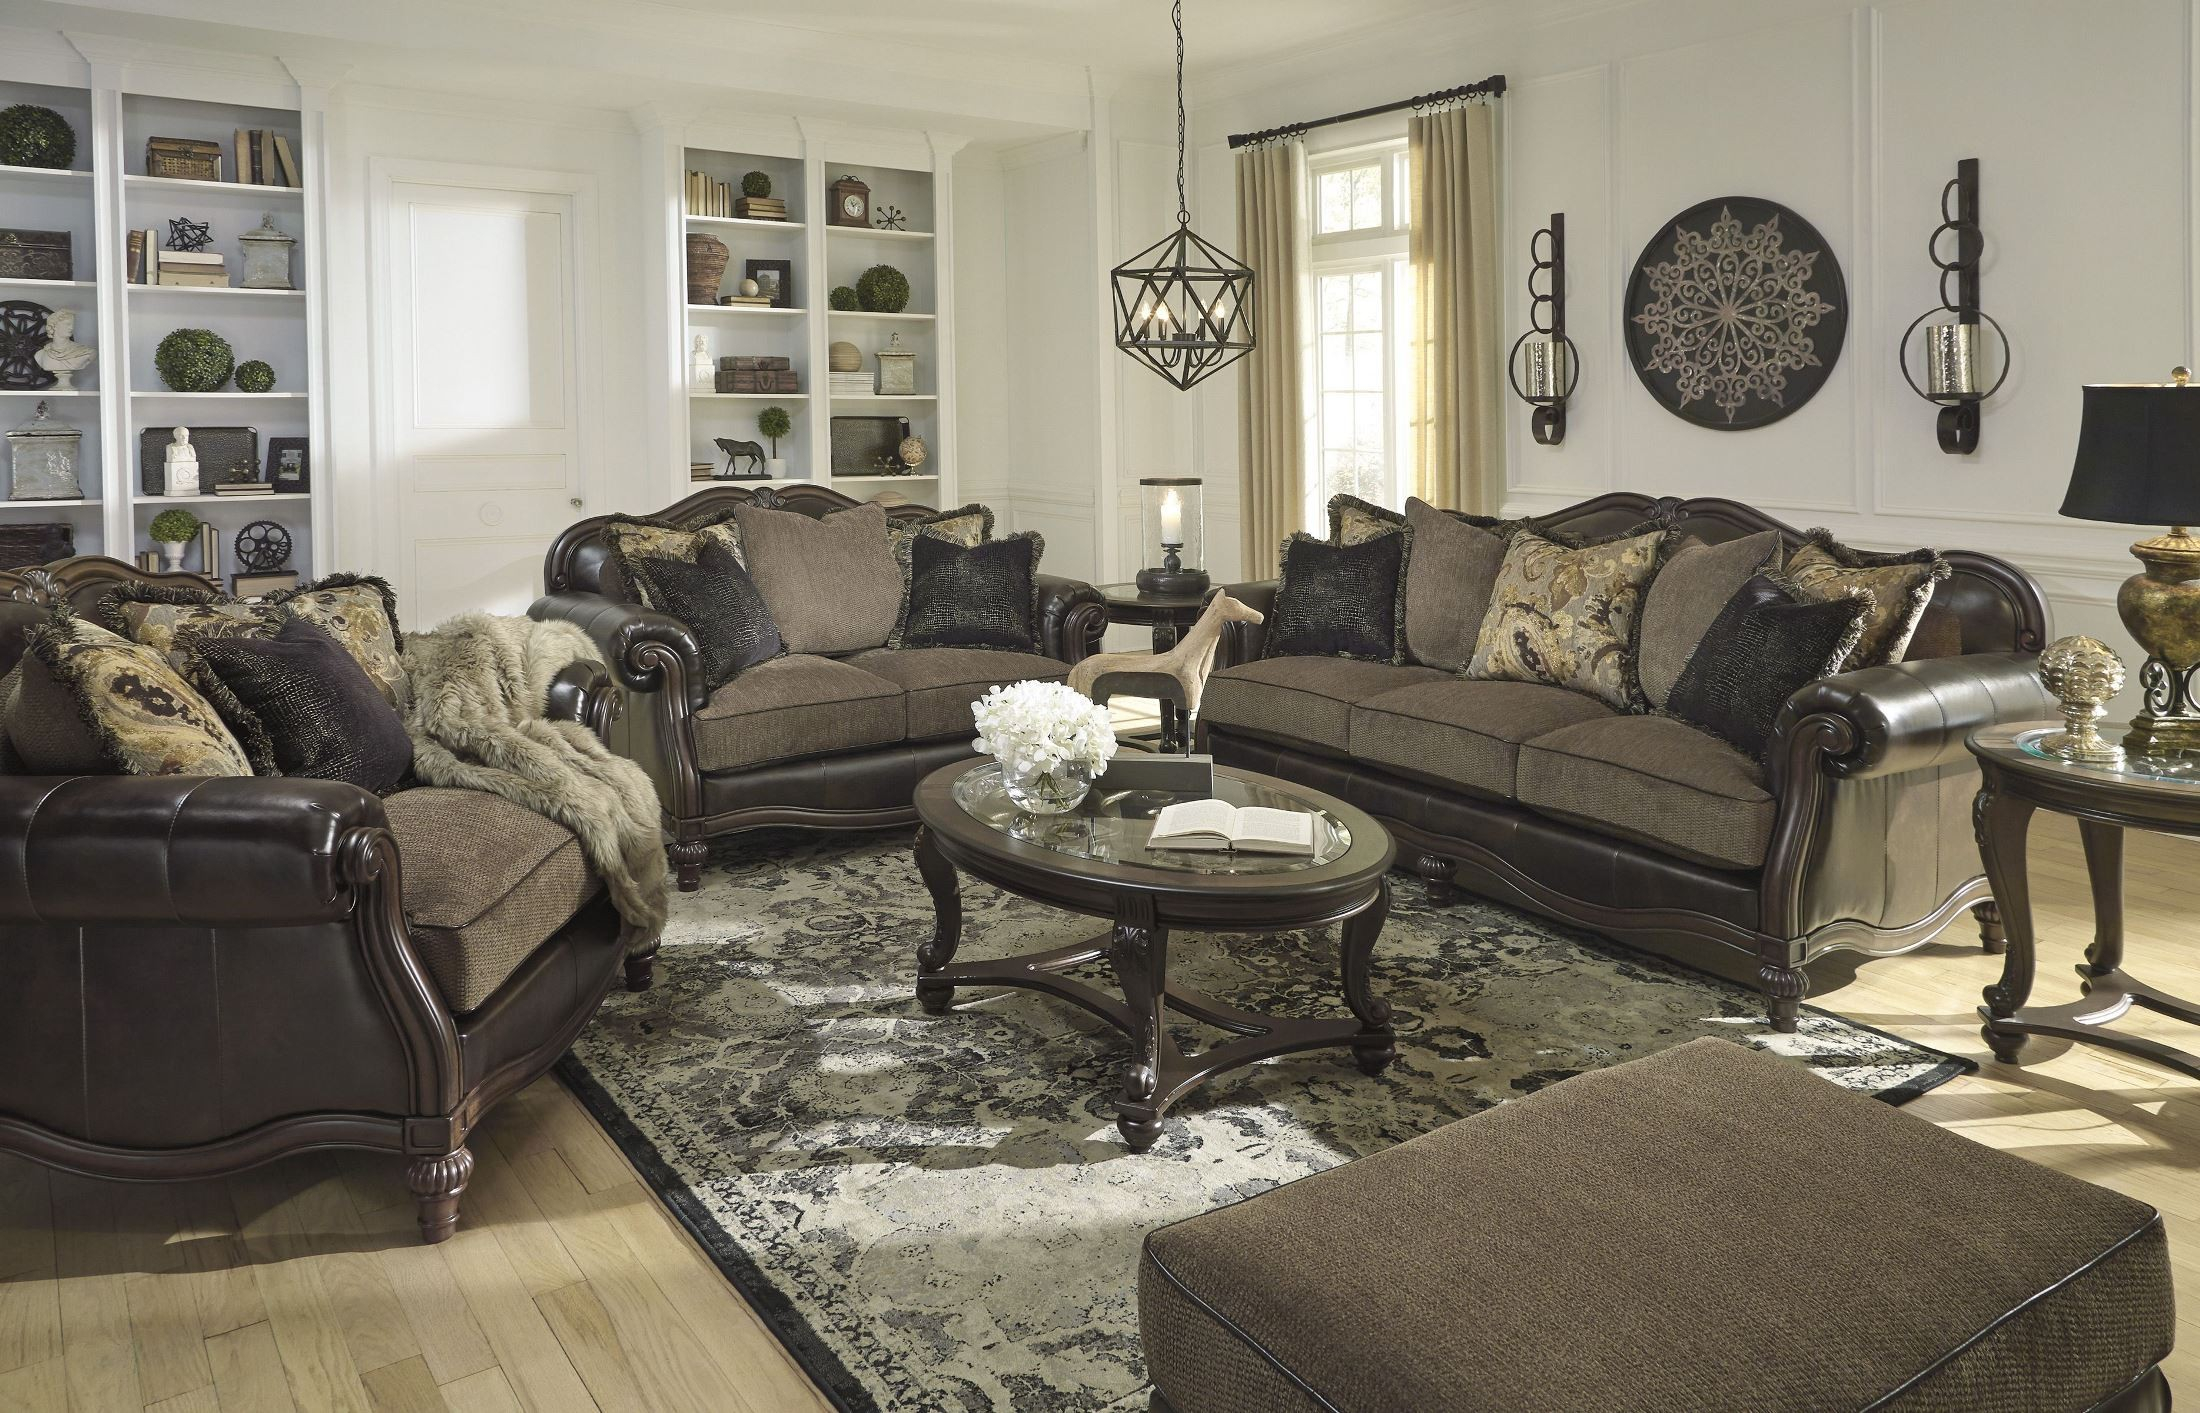 Winnsboro Durablend Vintage Living Room Set pertaining to 10 Smart Designs of How to Build Complete Living Room Sets